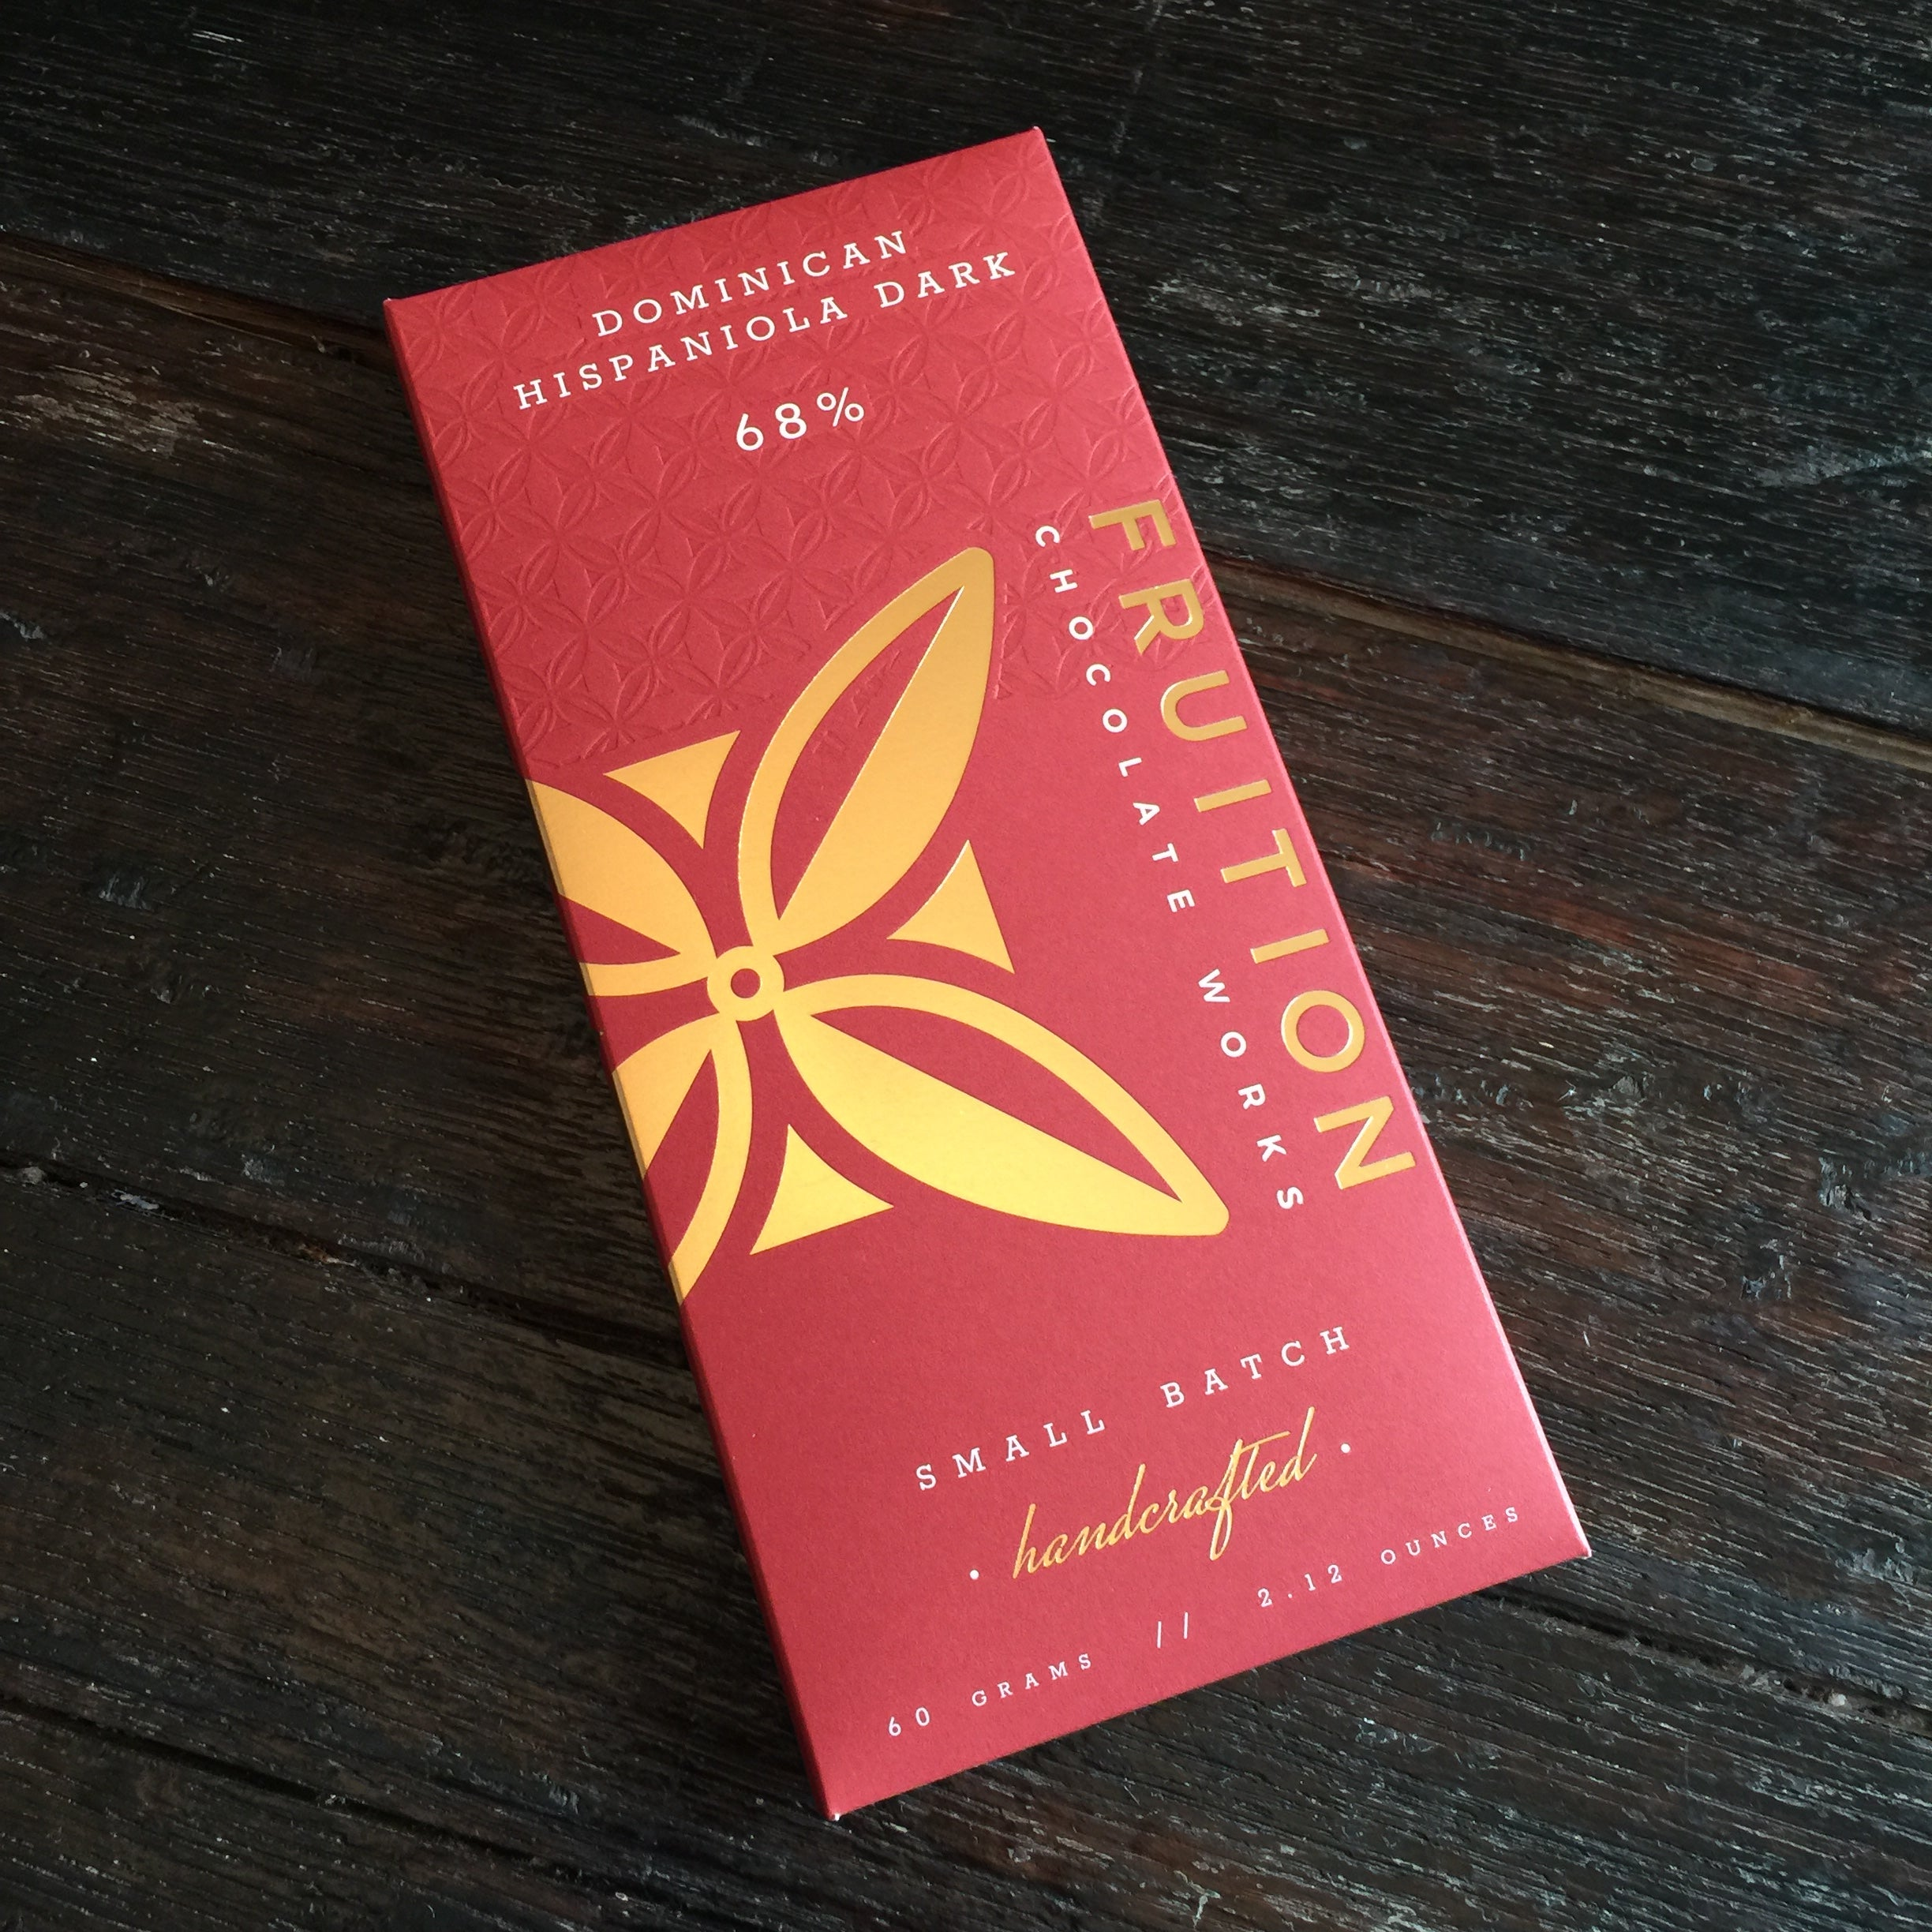 Fruition Chocolate Works 68% Dominican Hispaniola Dark Chocolate Bar